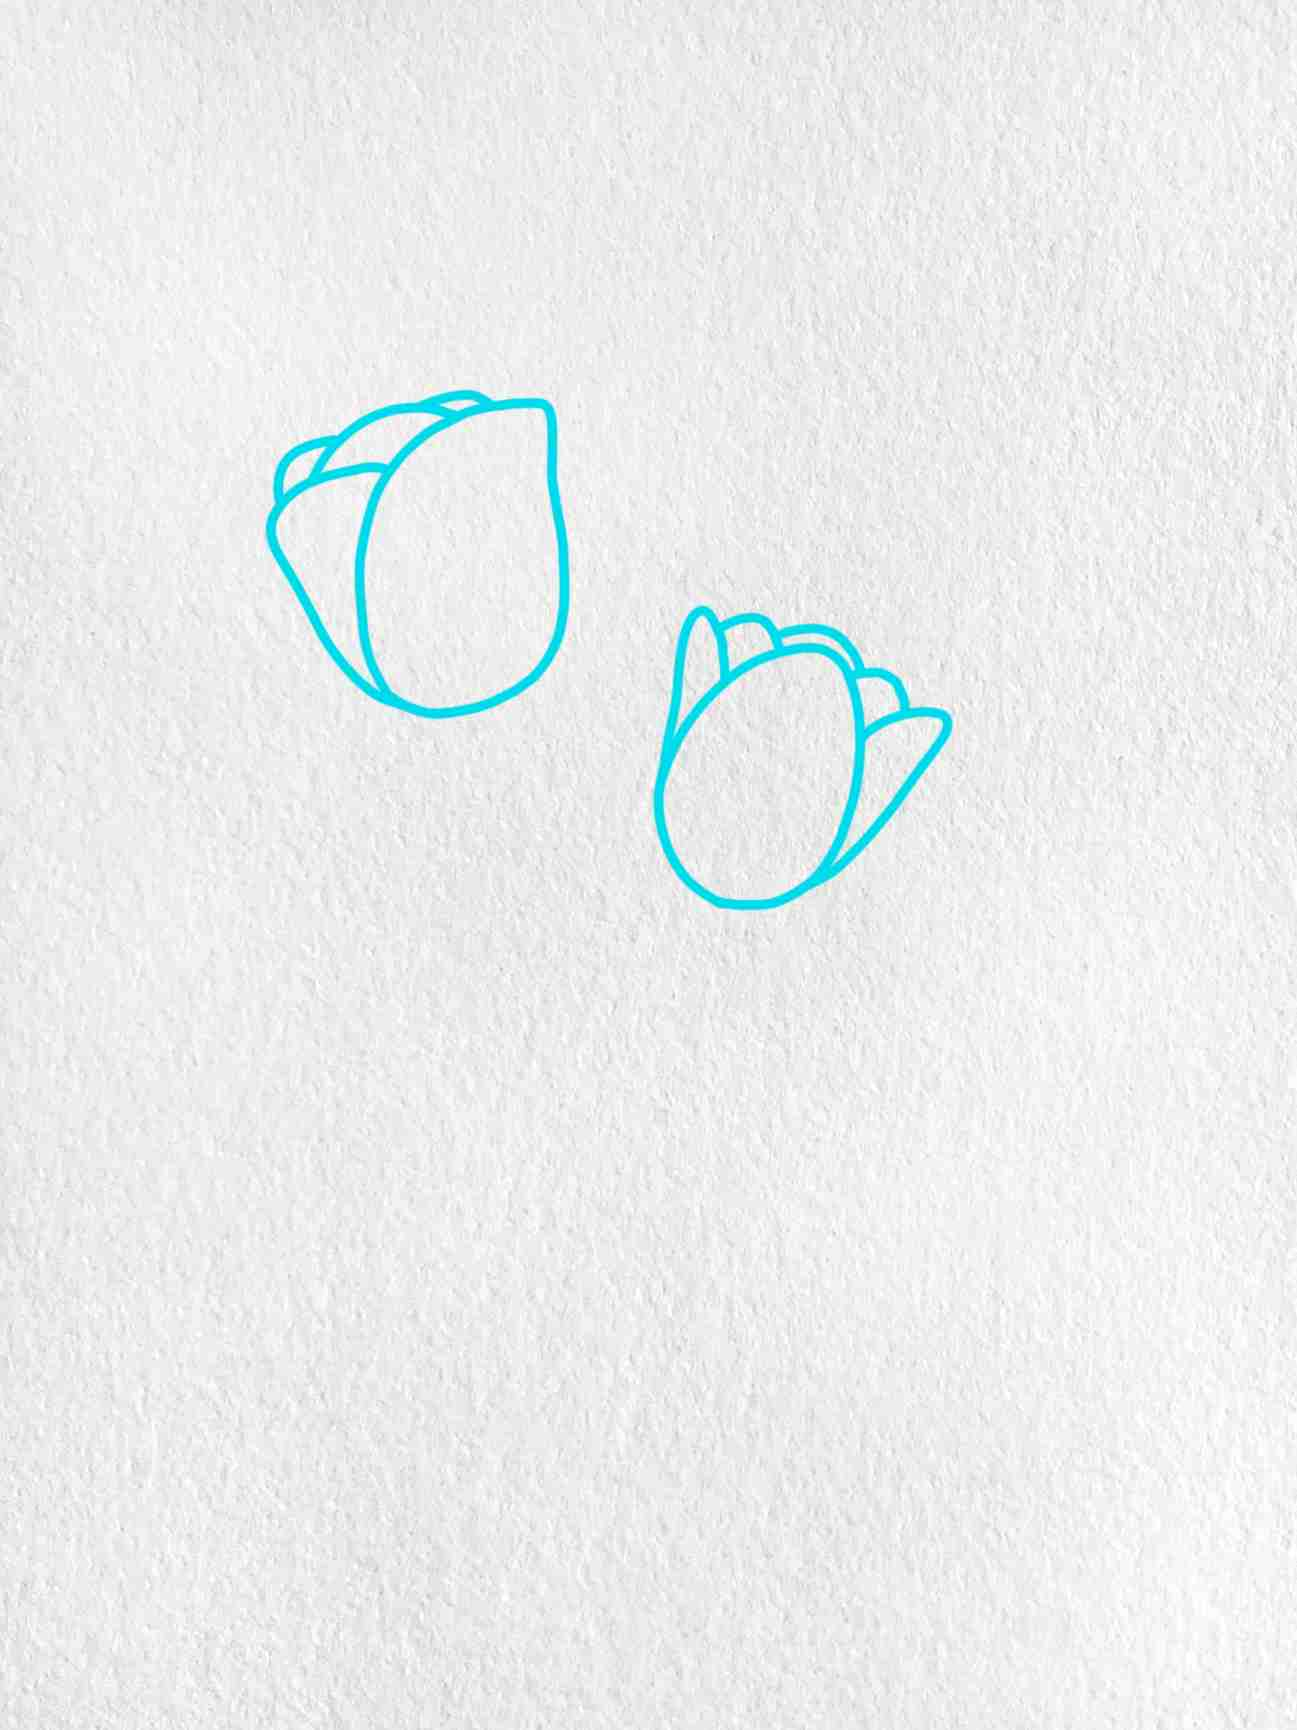 Easy To Draw Flowers: Step 1